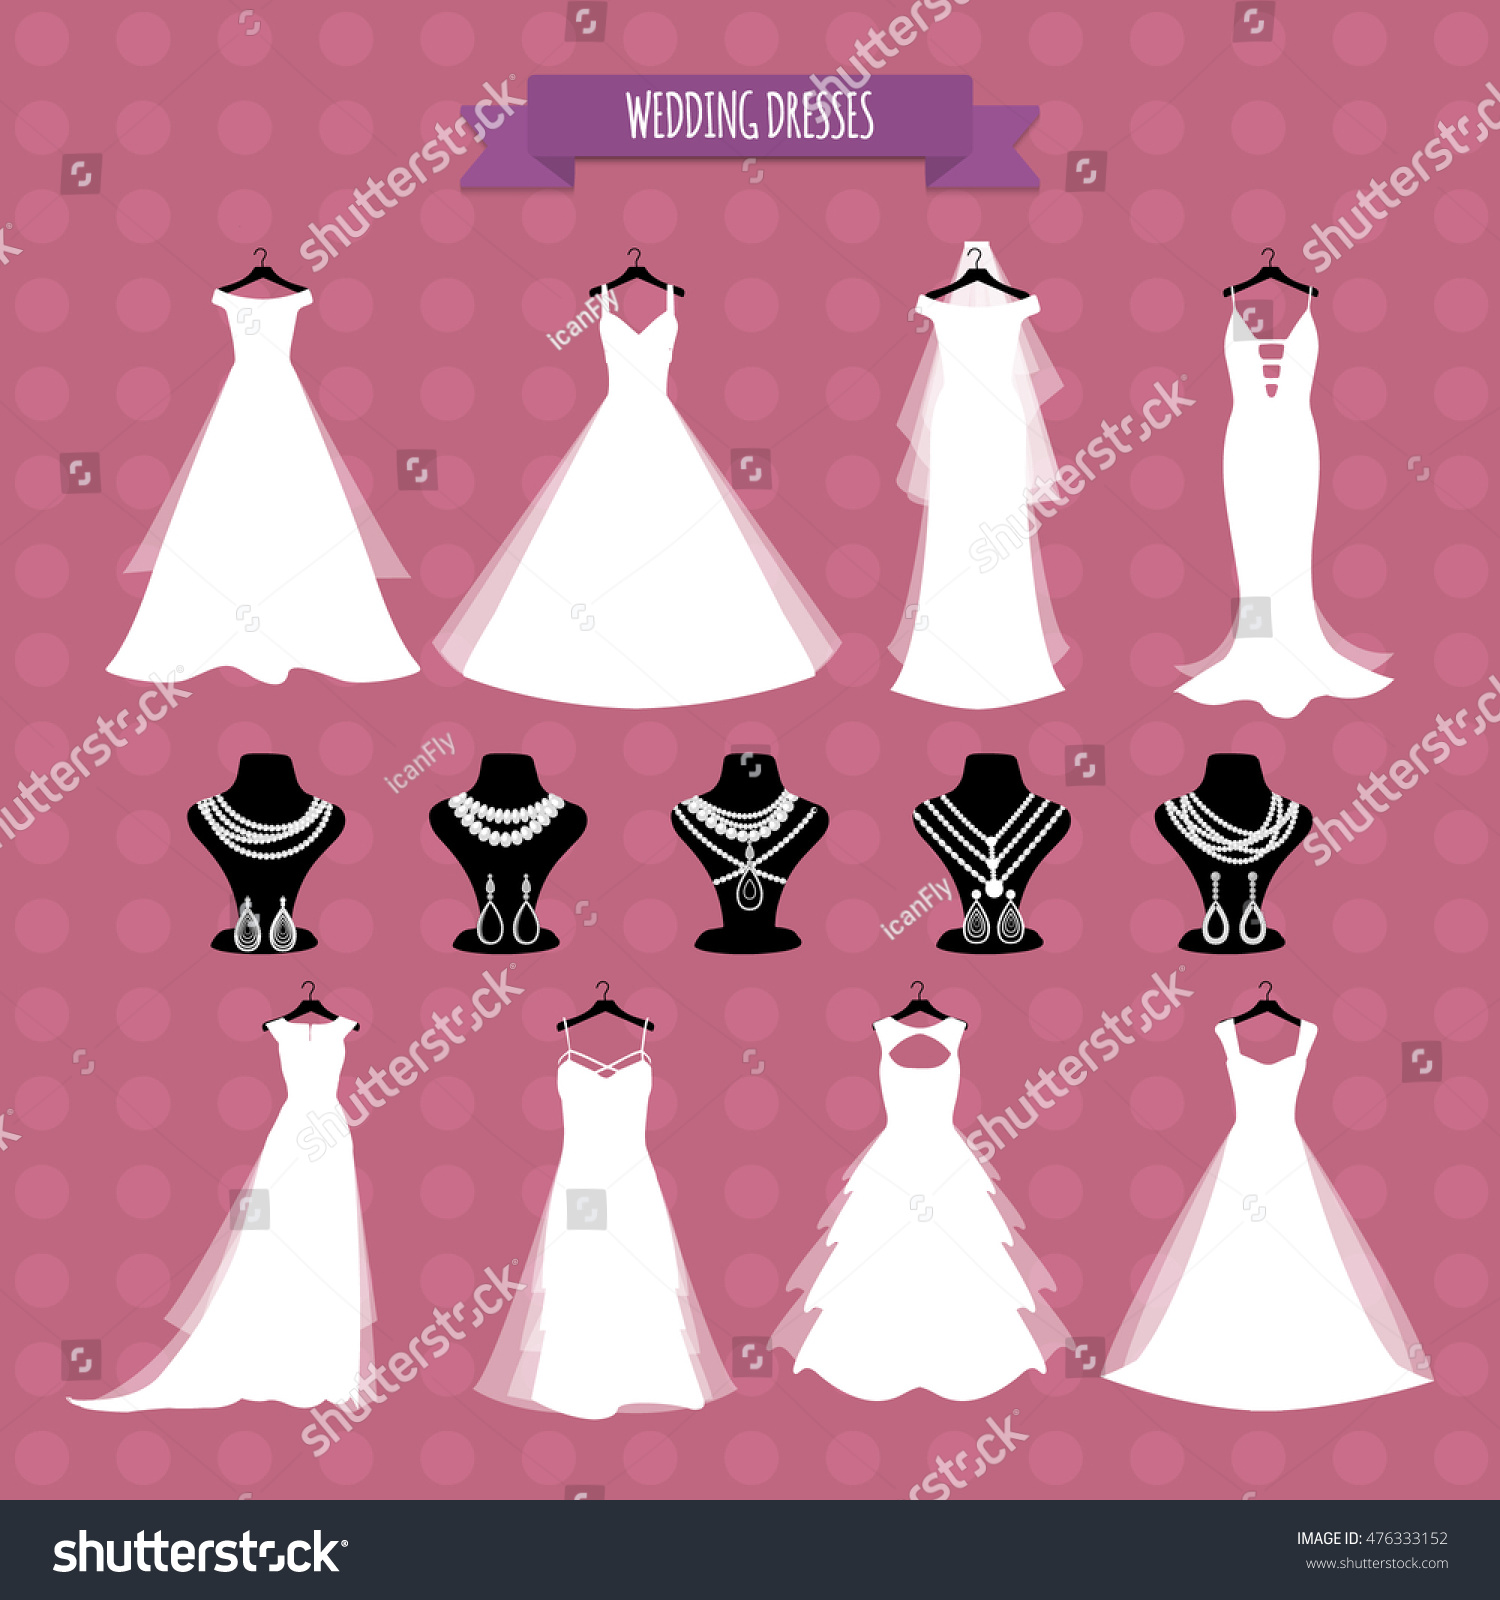 Wedding Dresses Wedding Gown Accessories Set Stock Vector (Royalty ...